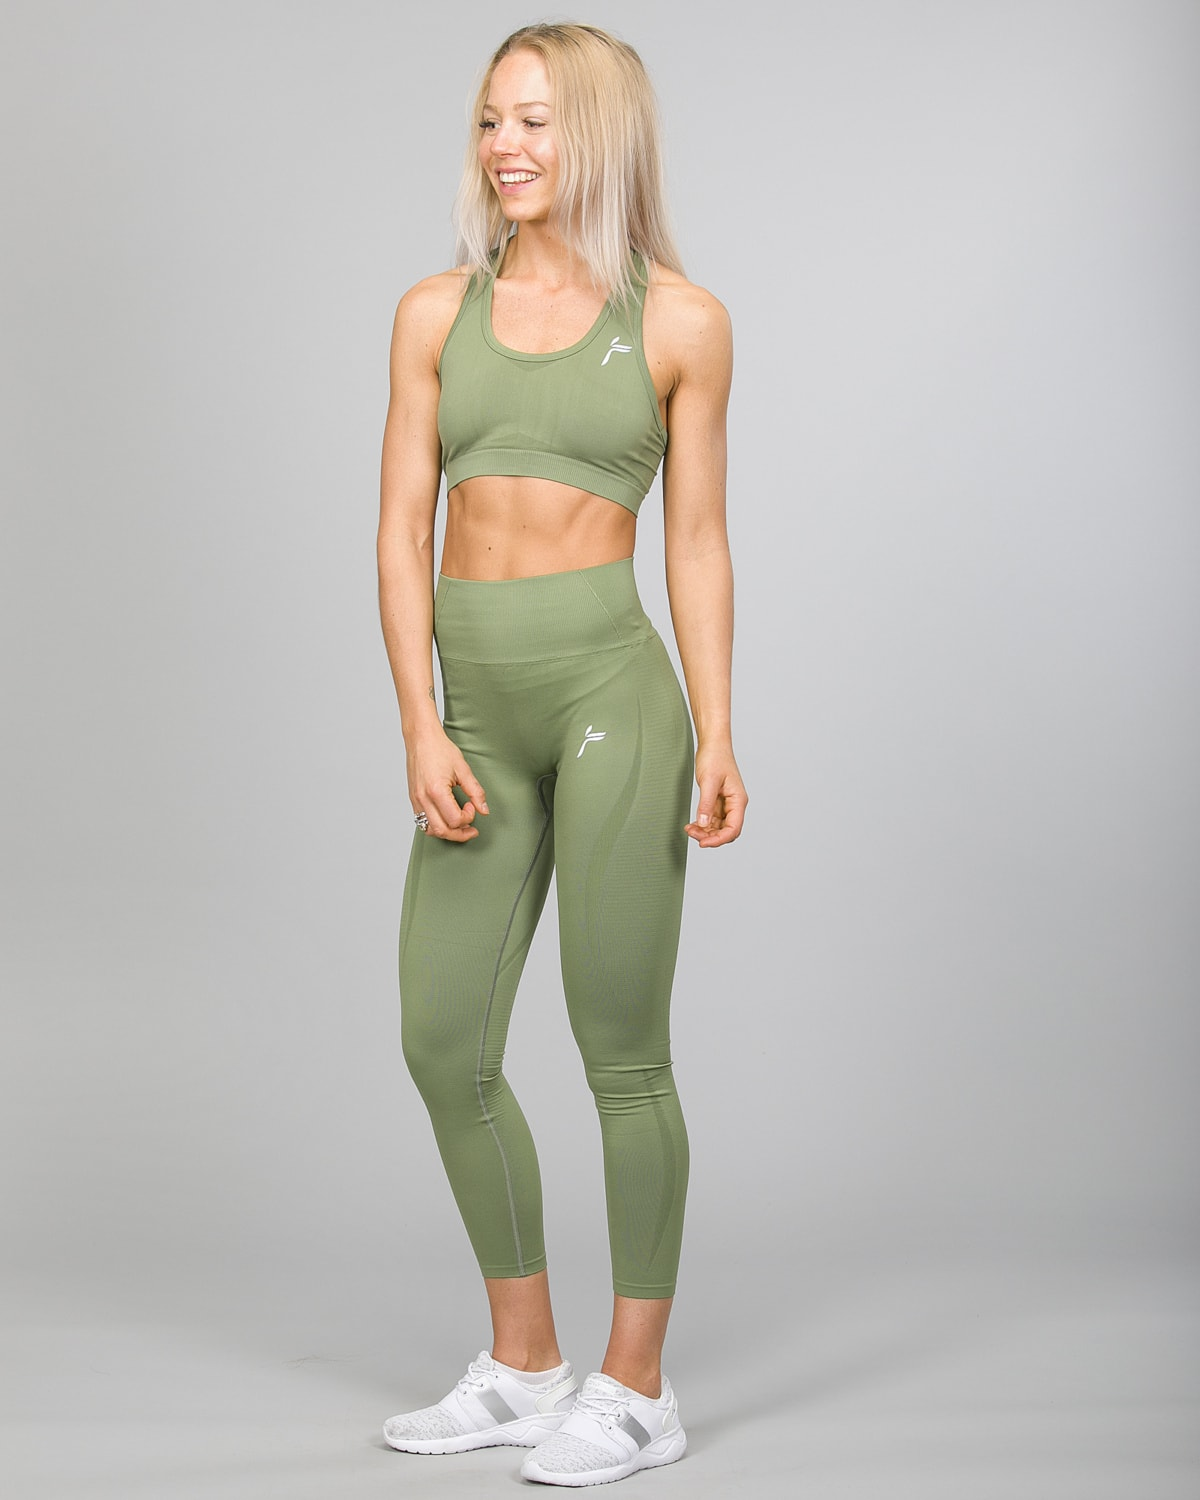 Famme Vortex Legging vhwl-ag and Drop It Sports Bra disb-ag Army Green b